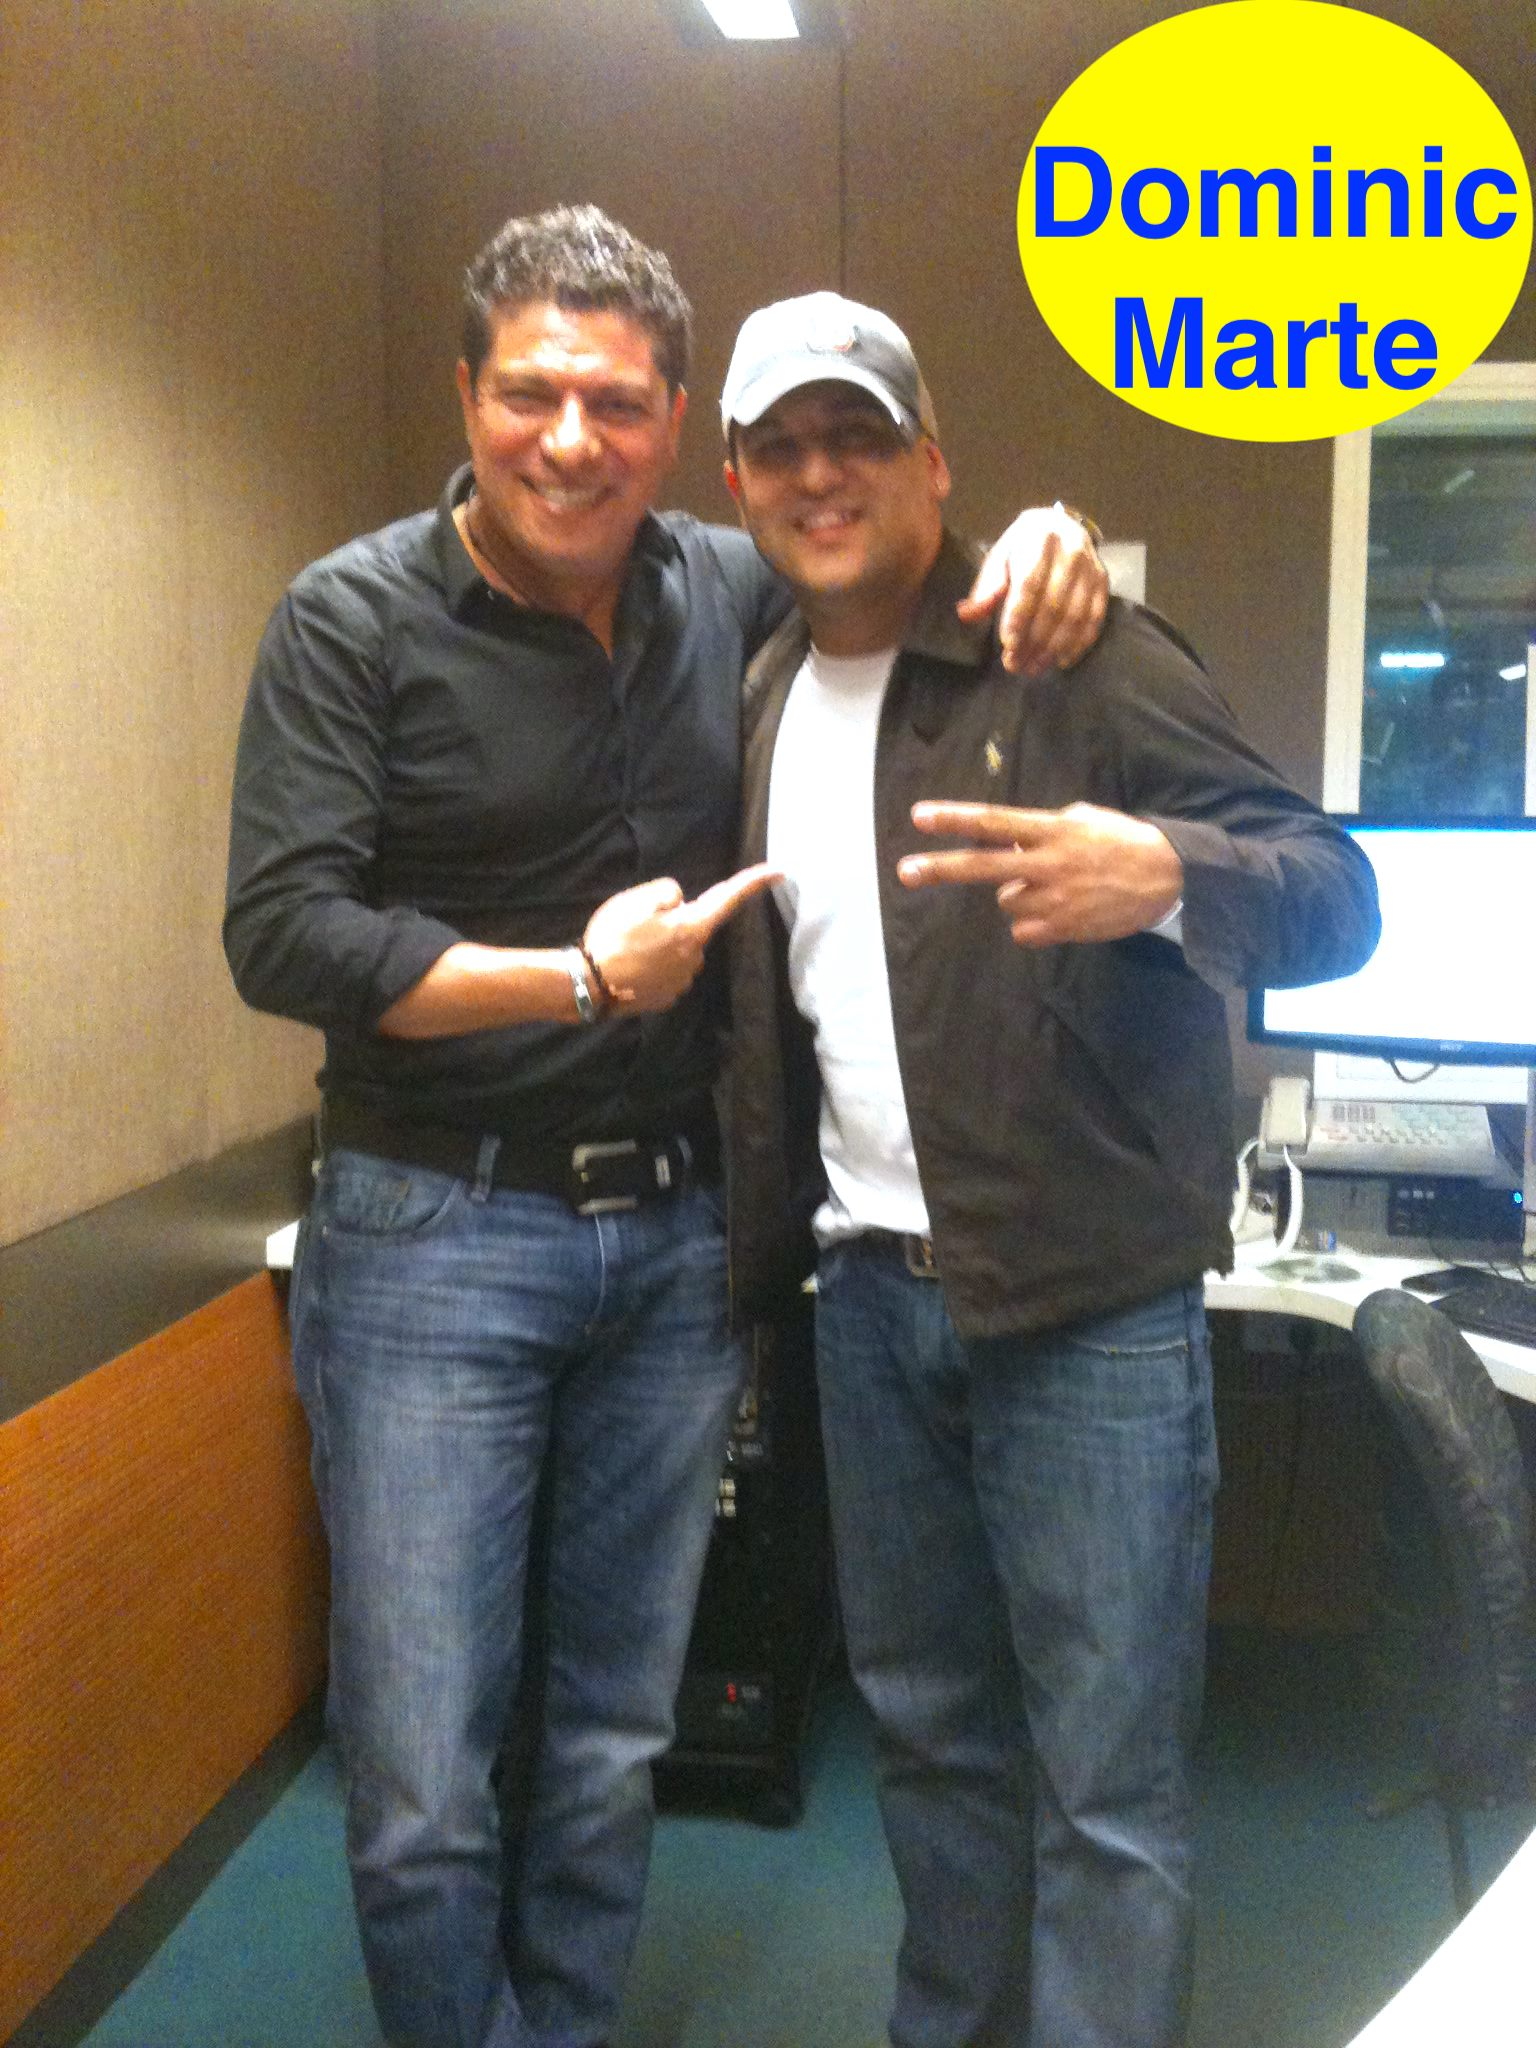 Dominic Marte at Latinos FM Studio.jpg